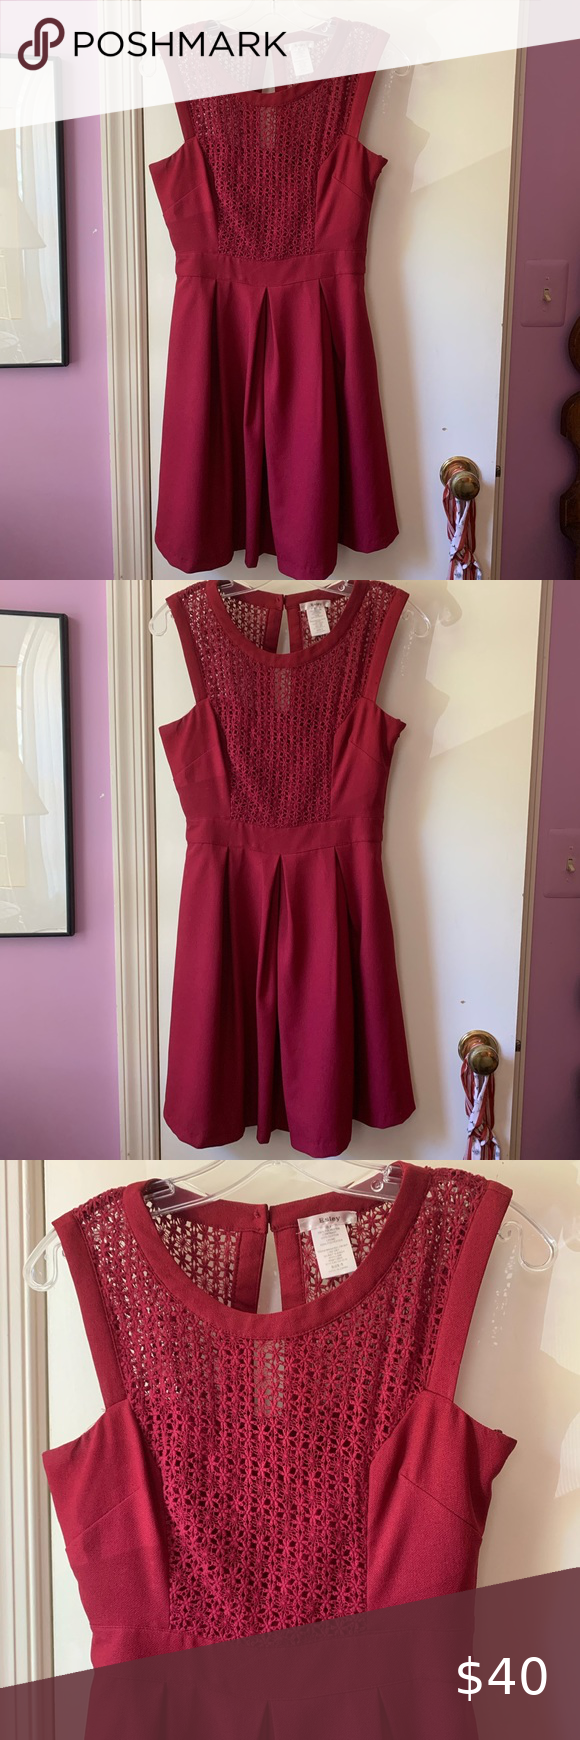 Red Modcloth Cocktail Dress Small Mod Cloth Dresses Dresses Cocktail Dress [ 1740 x 580 Pixel ]